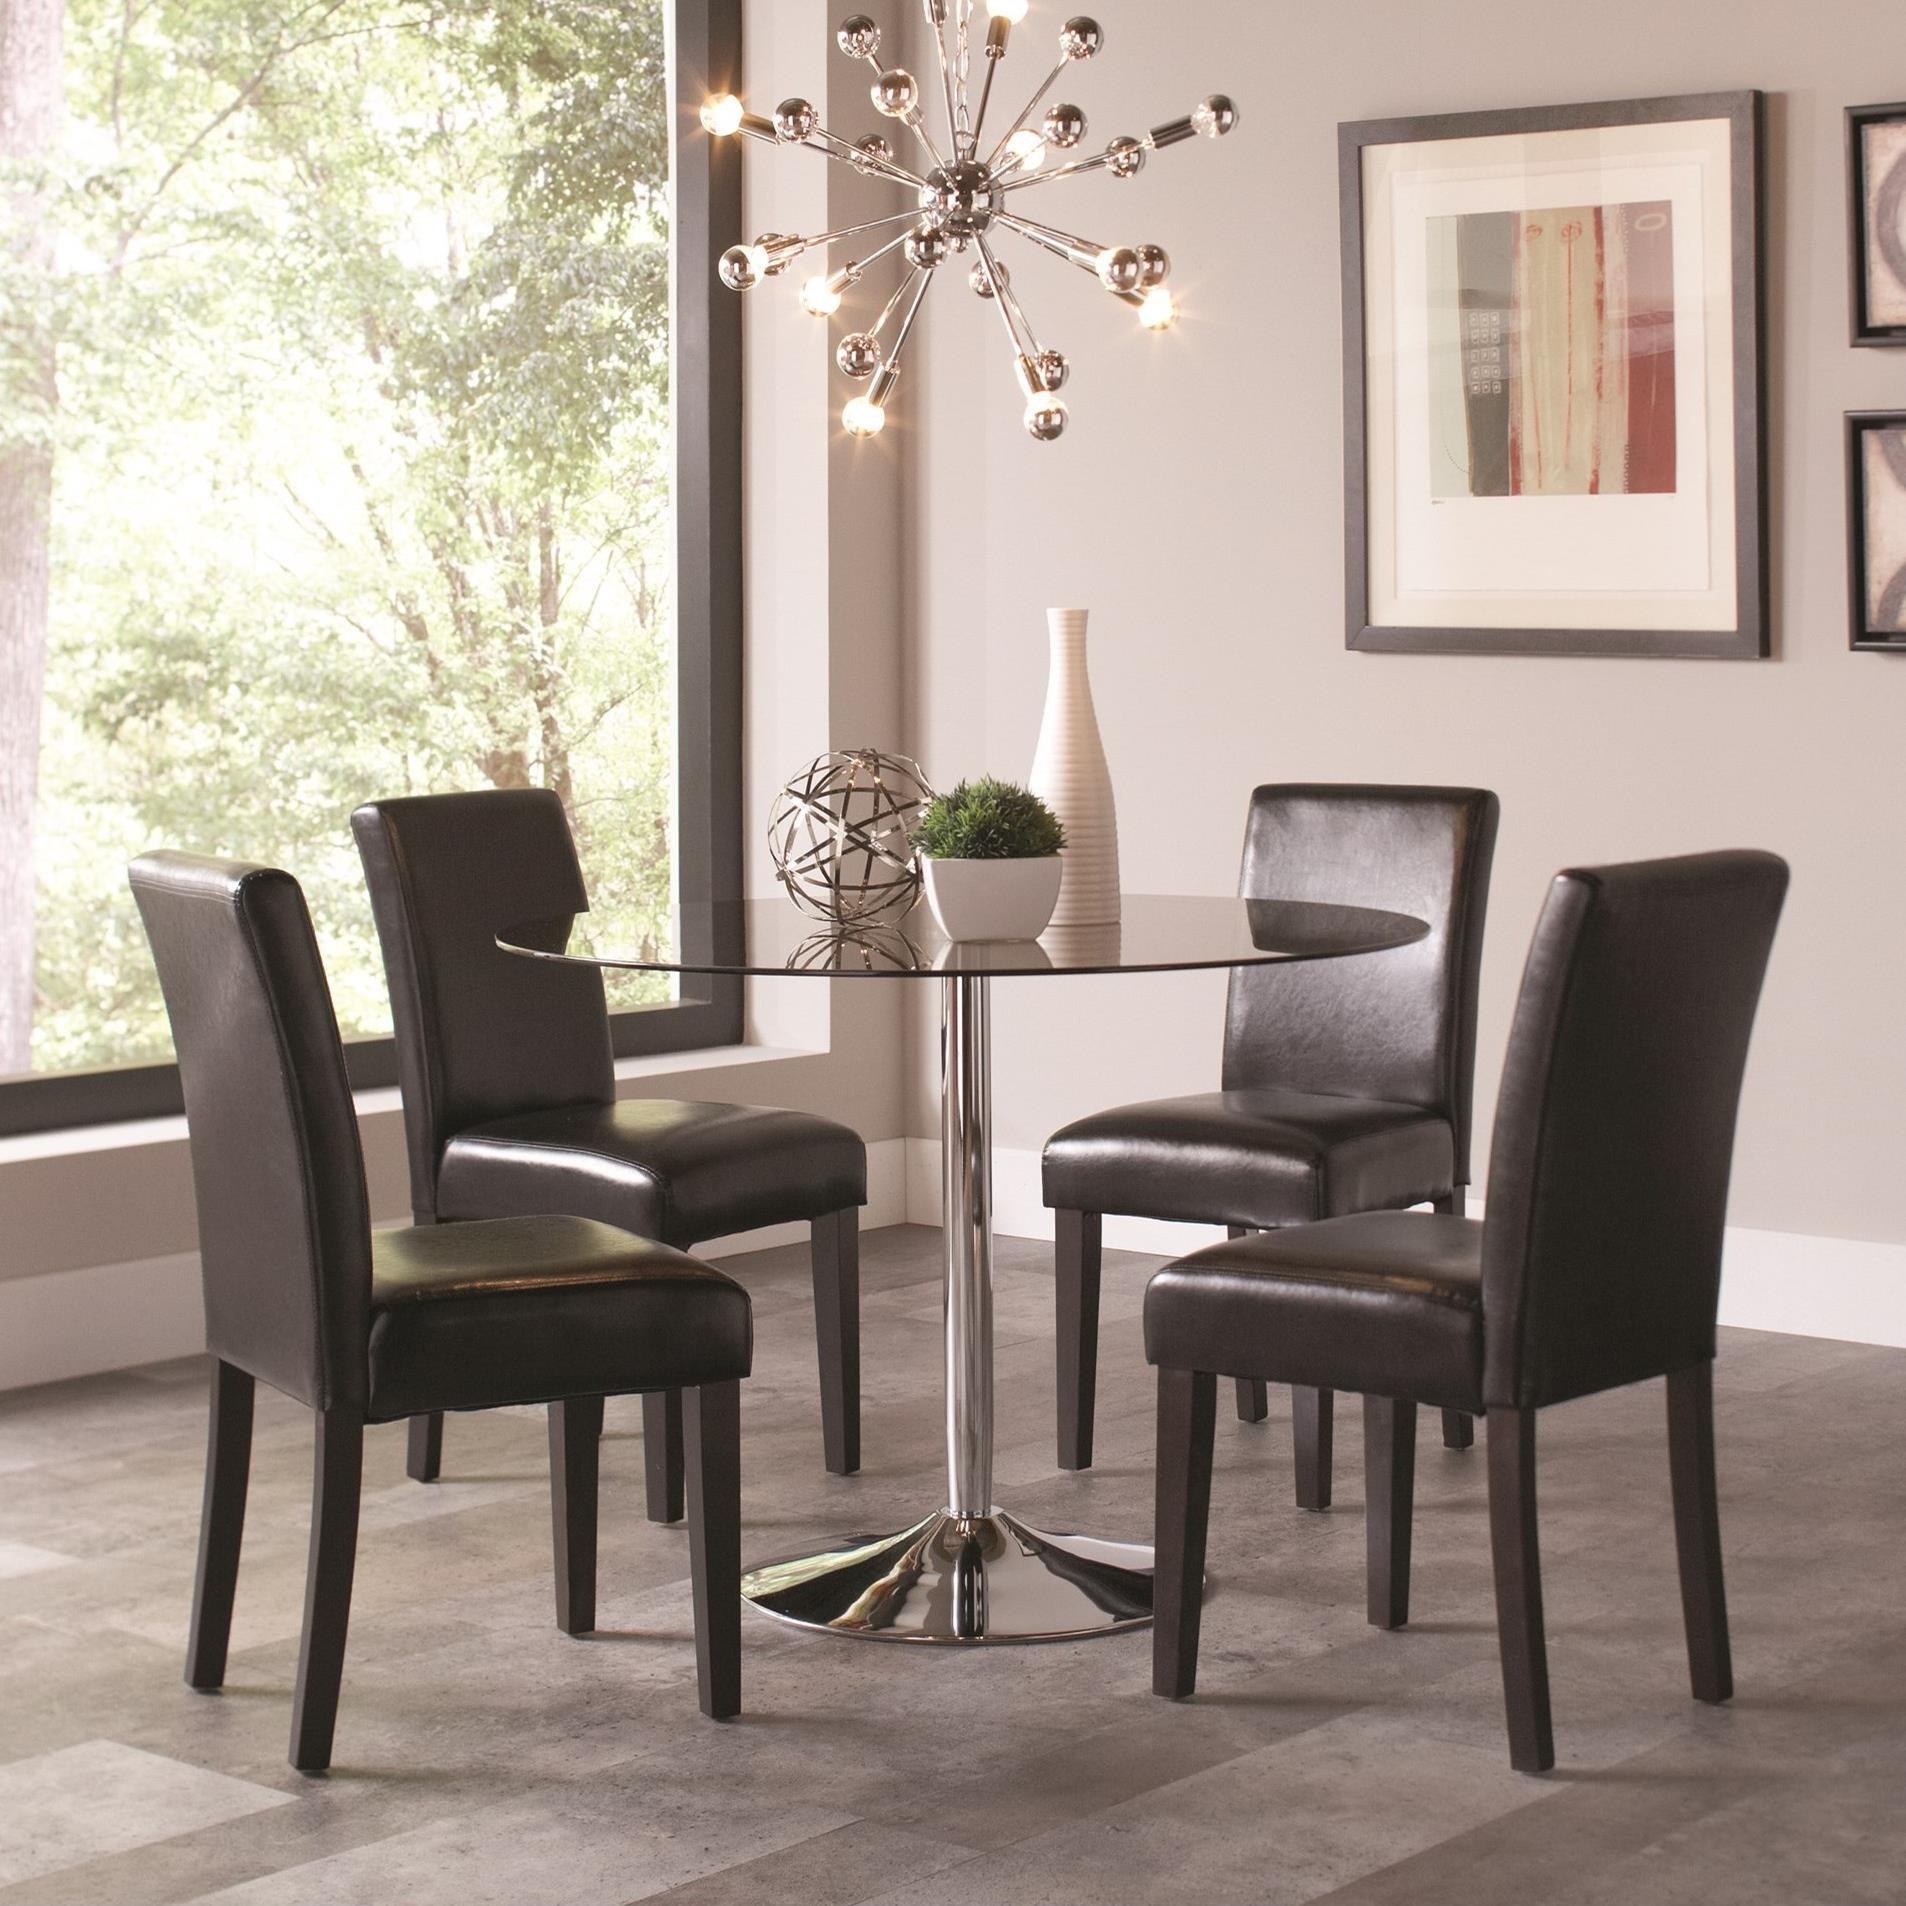 coaster clemente 5 piece round table chair set dunk bright furniture dining 5 piece sets. Black Bedroom Furniture Sets. Home Design Ideas